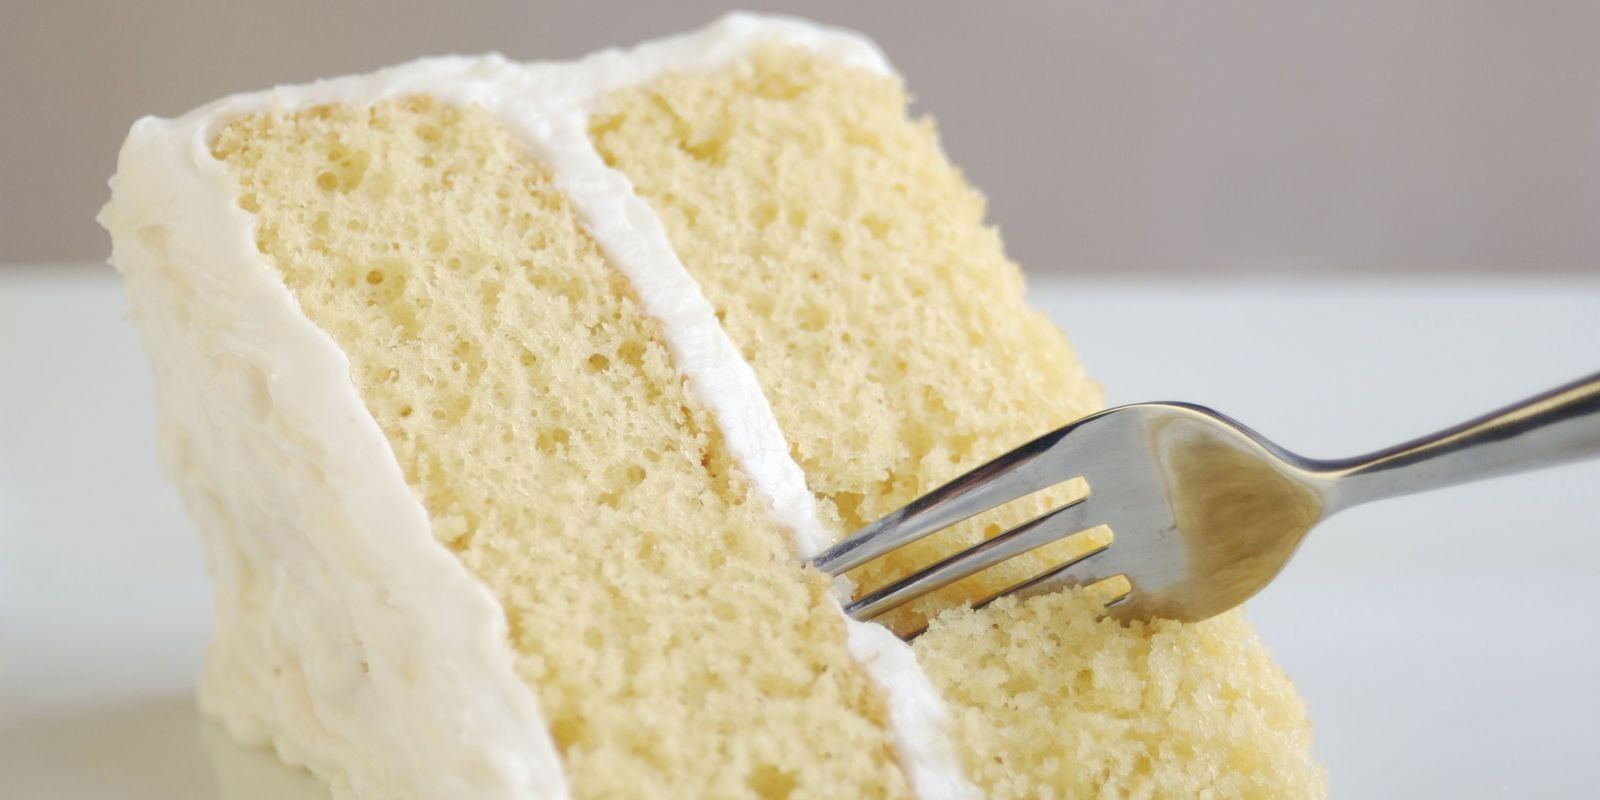 Simple Butter Cake Images : Basic Vanilla Cake Recipe Vanilla cake